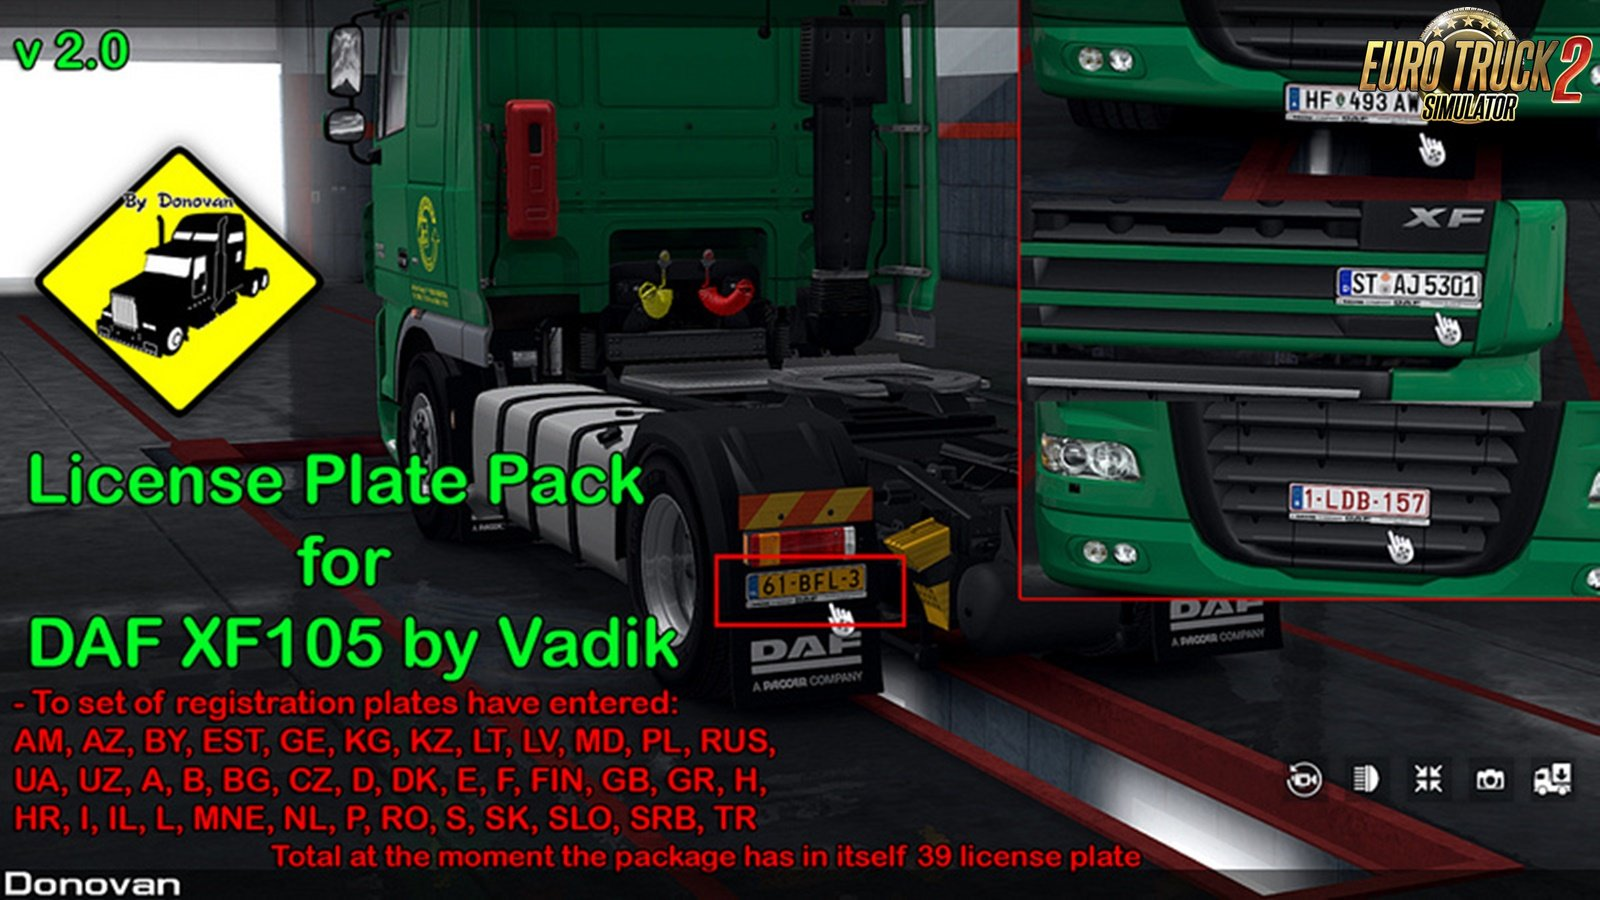 License Plate Pack for DAF XF105 v2.0 by Vad&k